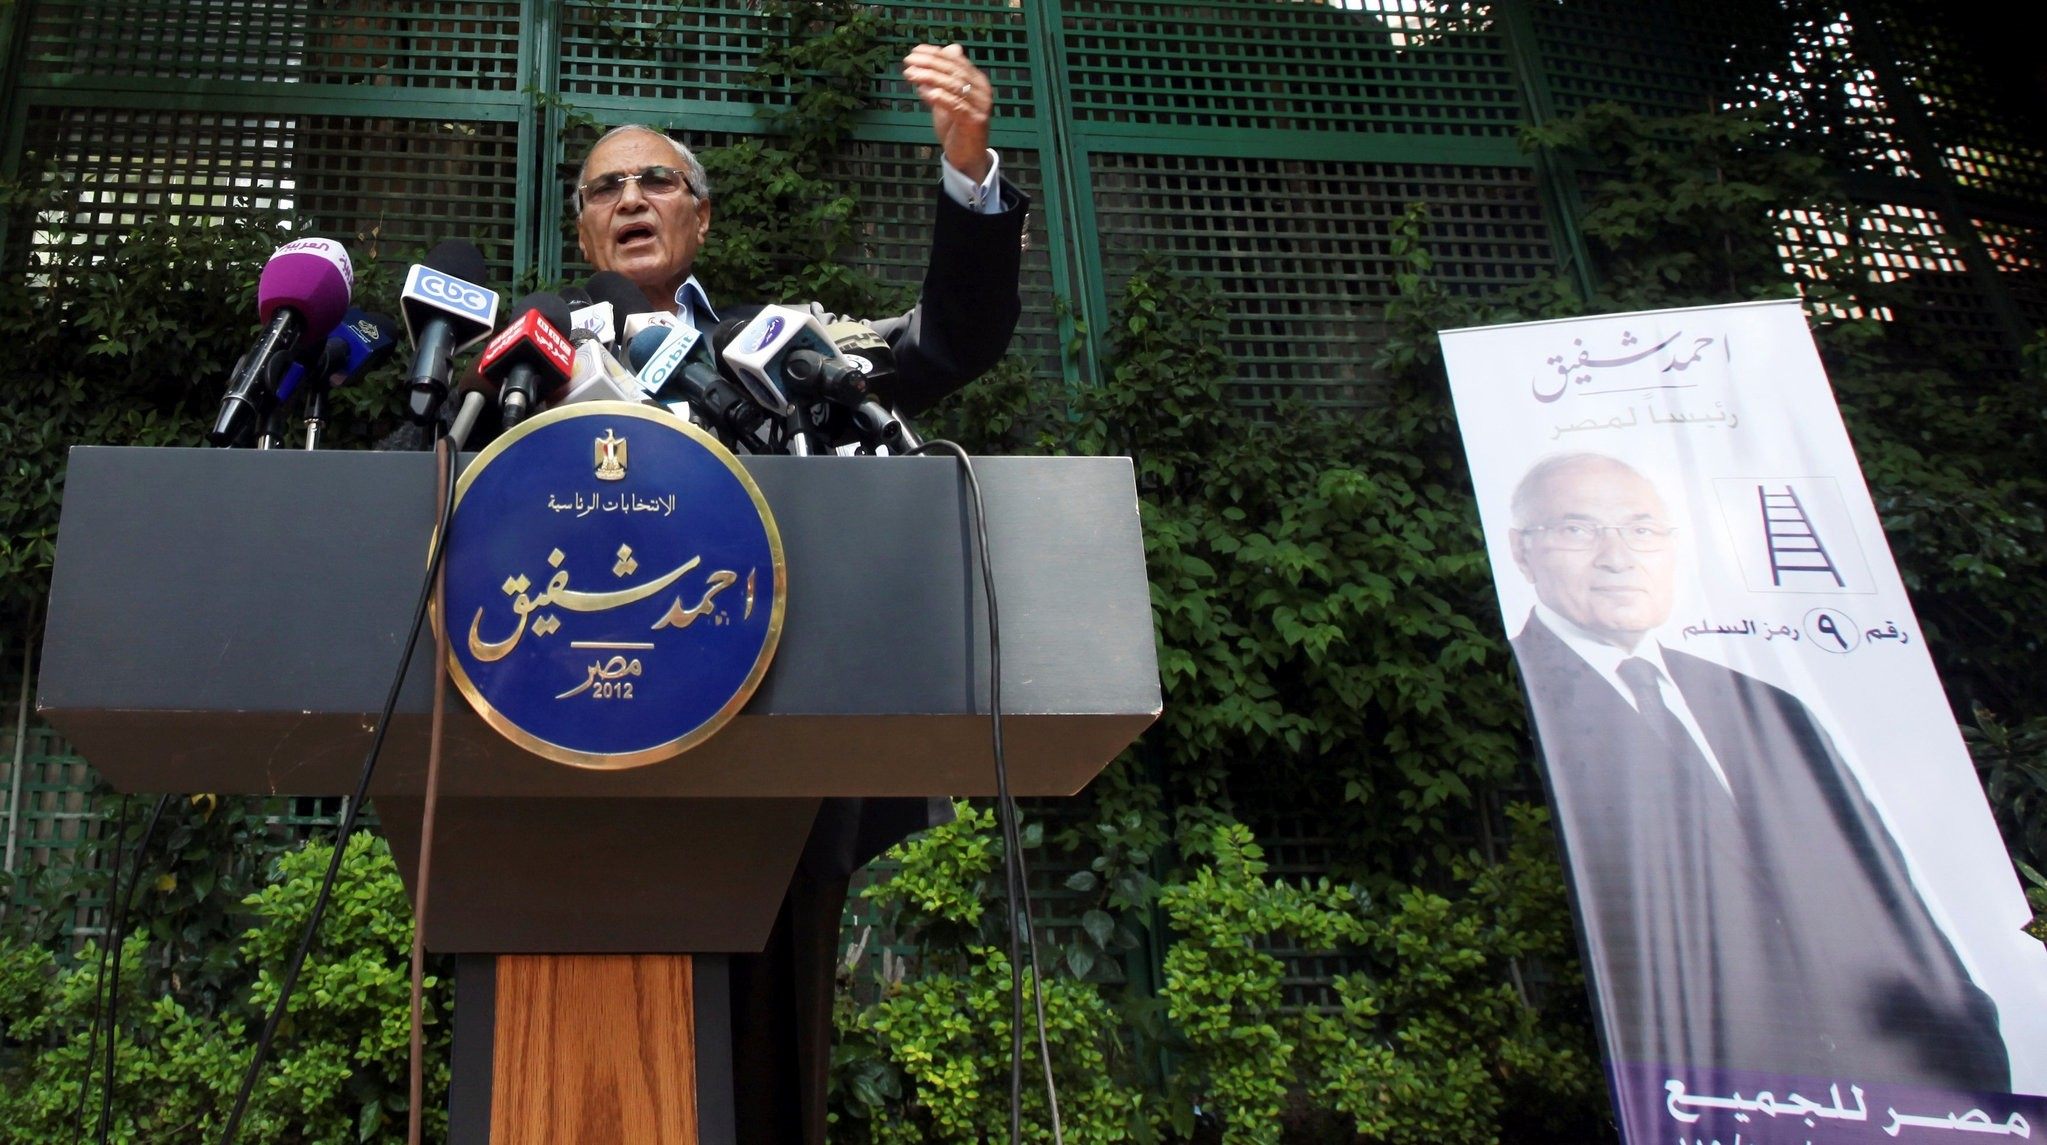 FILE PHOTO: Former Prime Minister and presidential candidate Ahmed Shafiq attends a news conference in Cairo, Egypt May 14, 2012. (REUTERS Photo)